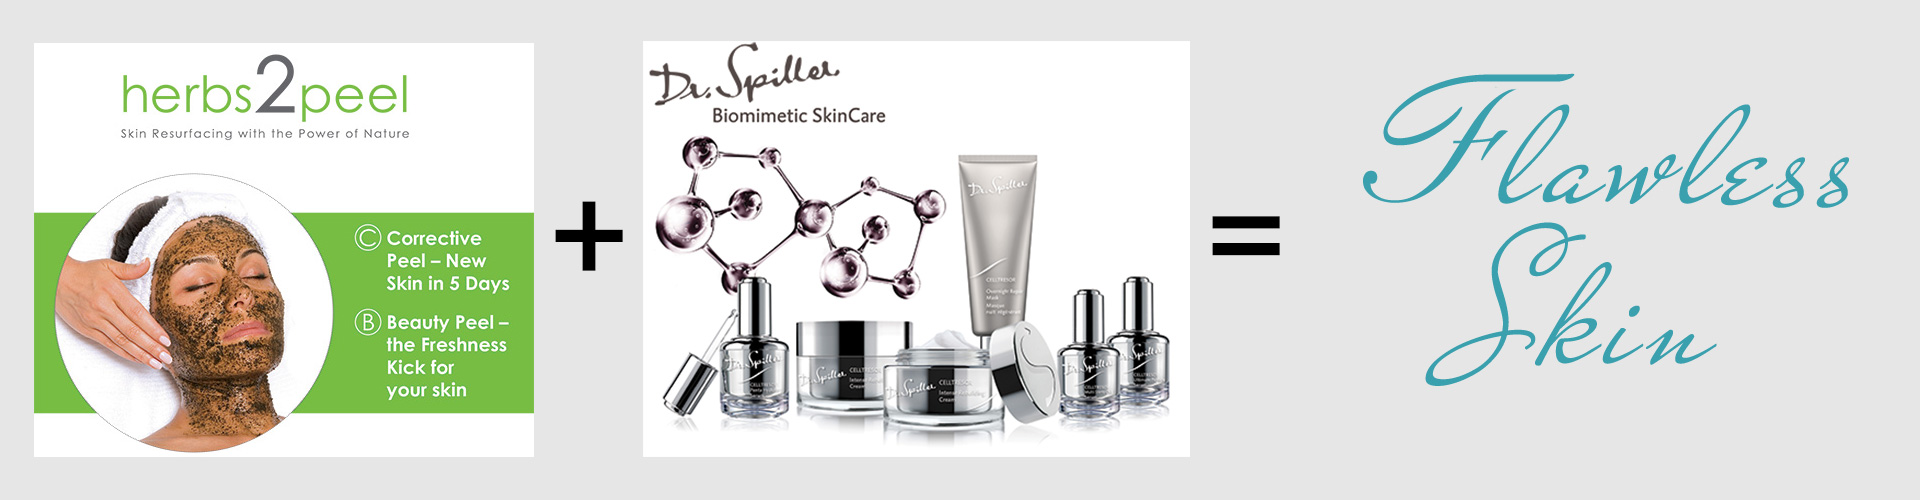 Herbal Aktiv Peel Plus Dr Spiller = Flawless Skin